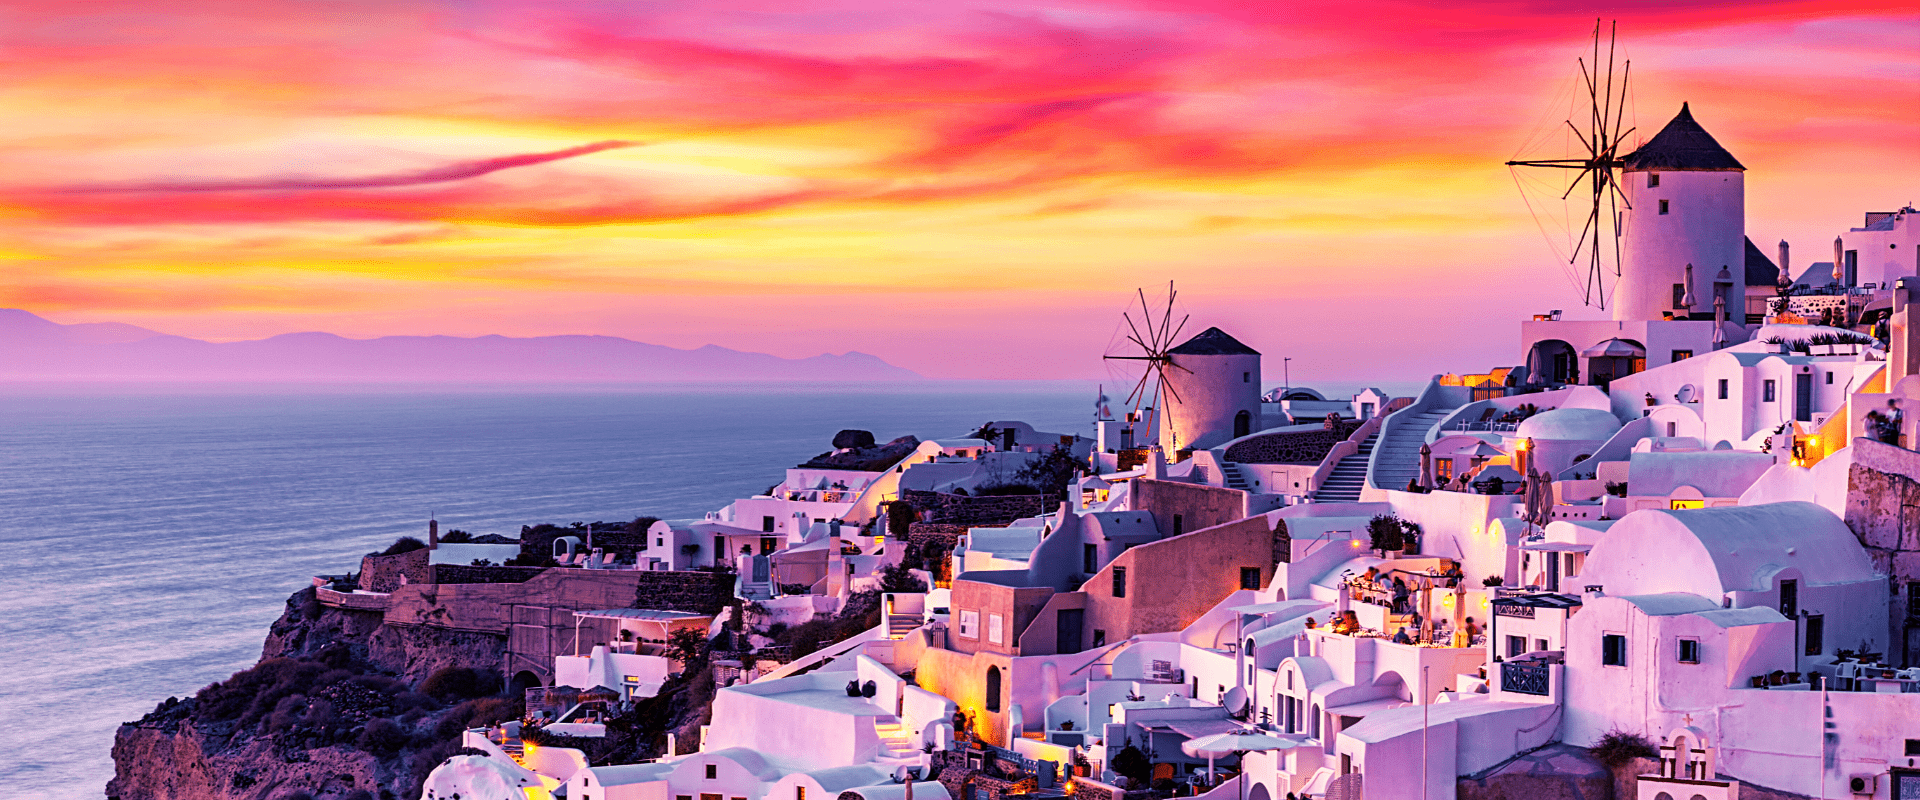 Best of Greece Egypt Tour with Cruise